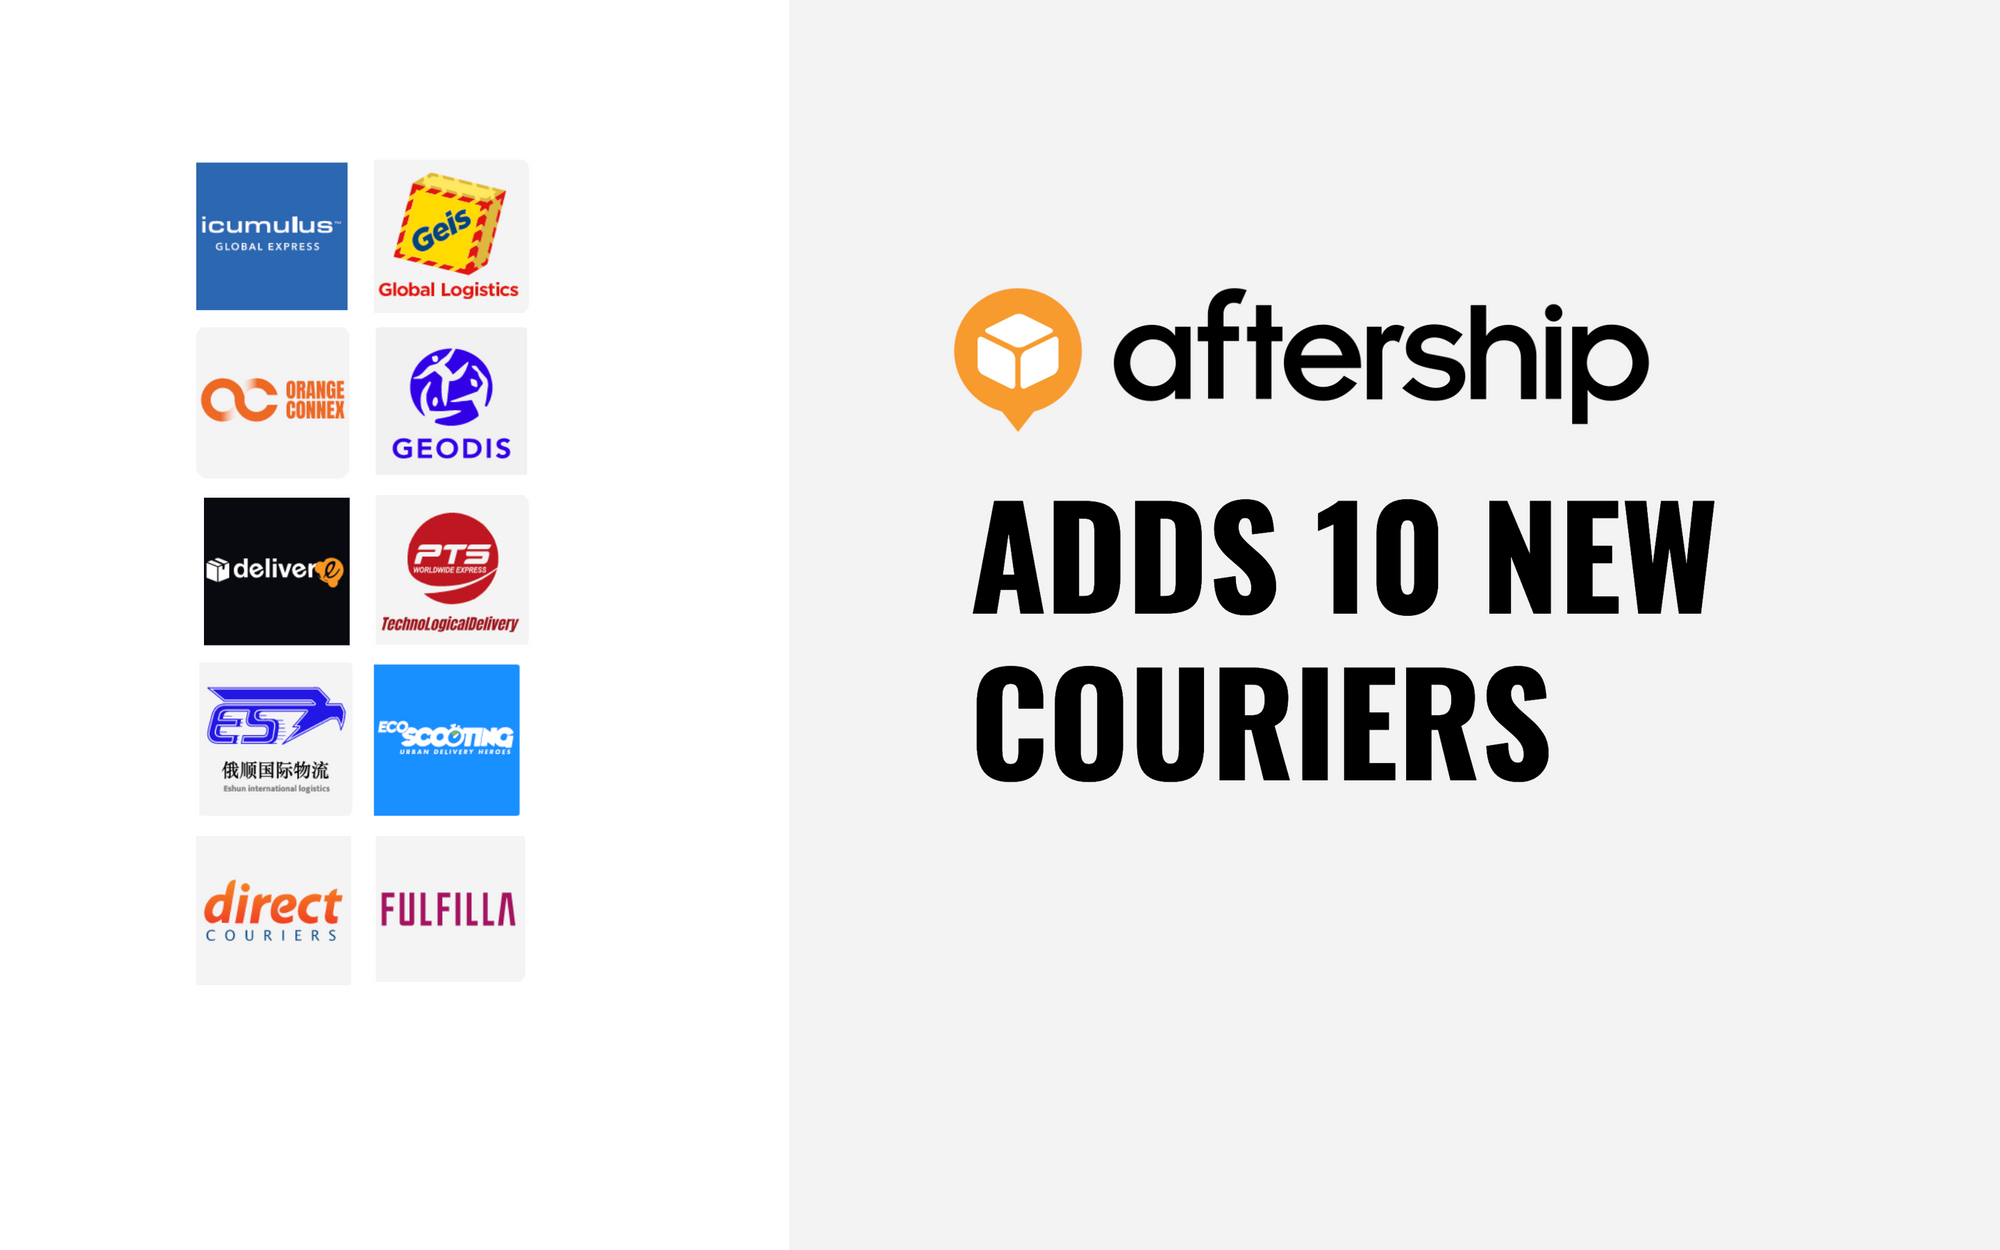 AfterShip adds 10 new couriers (20th April 2021 to 2nd May 2021)